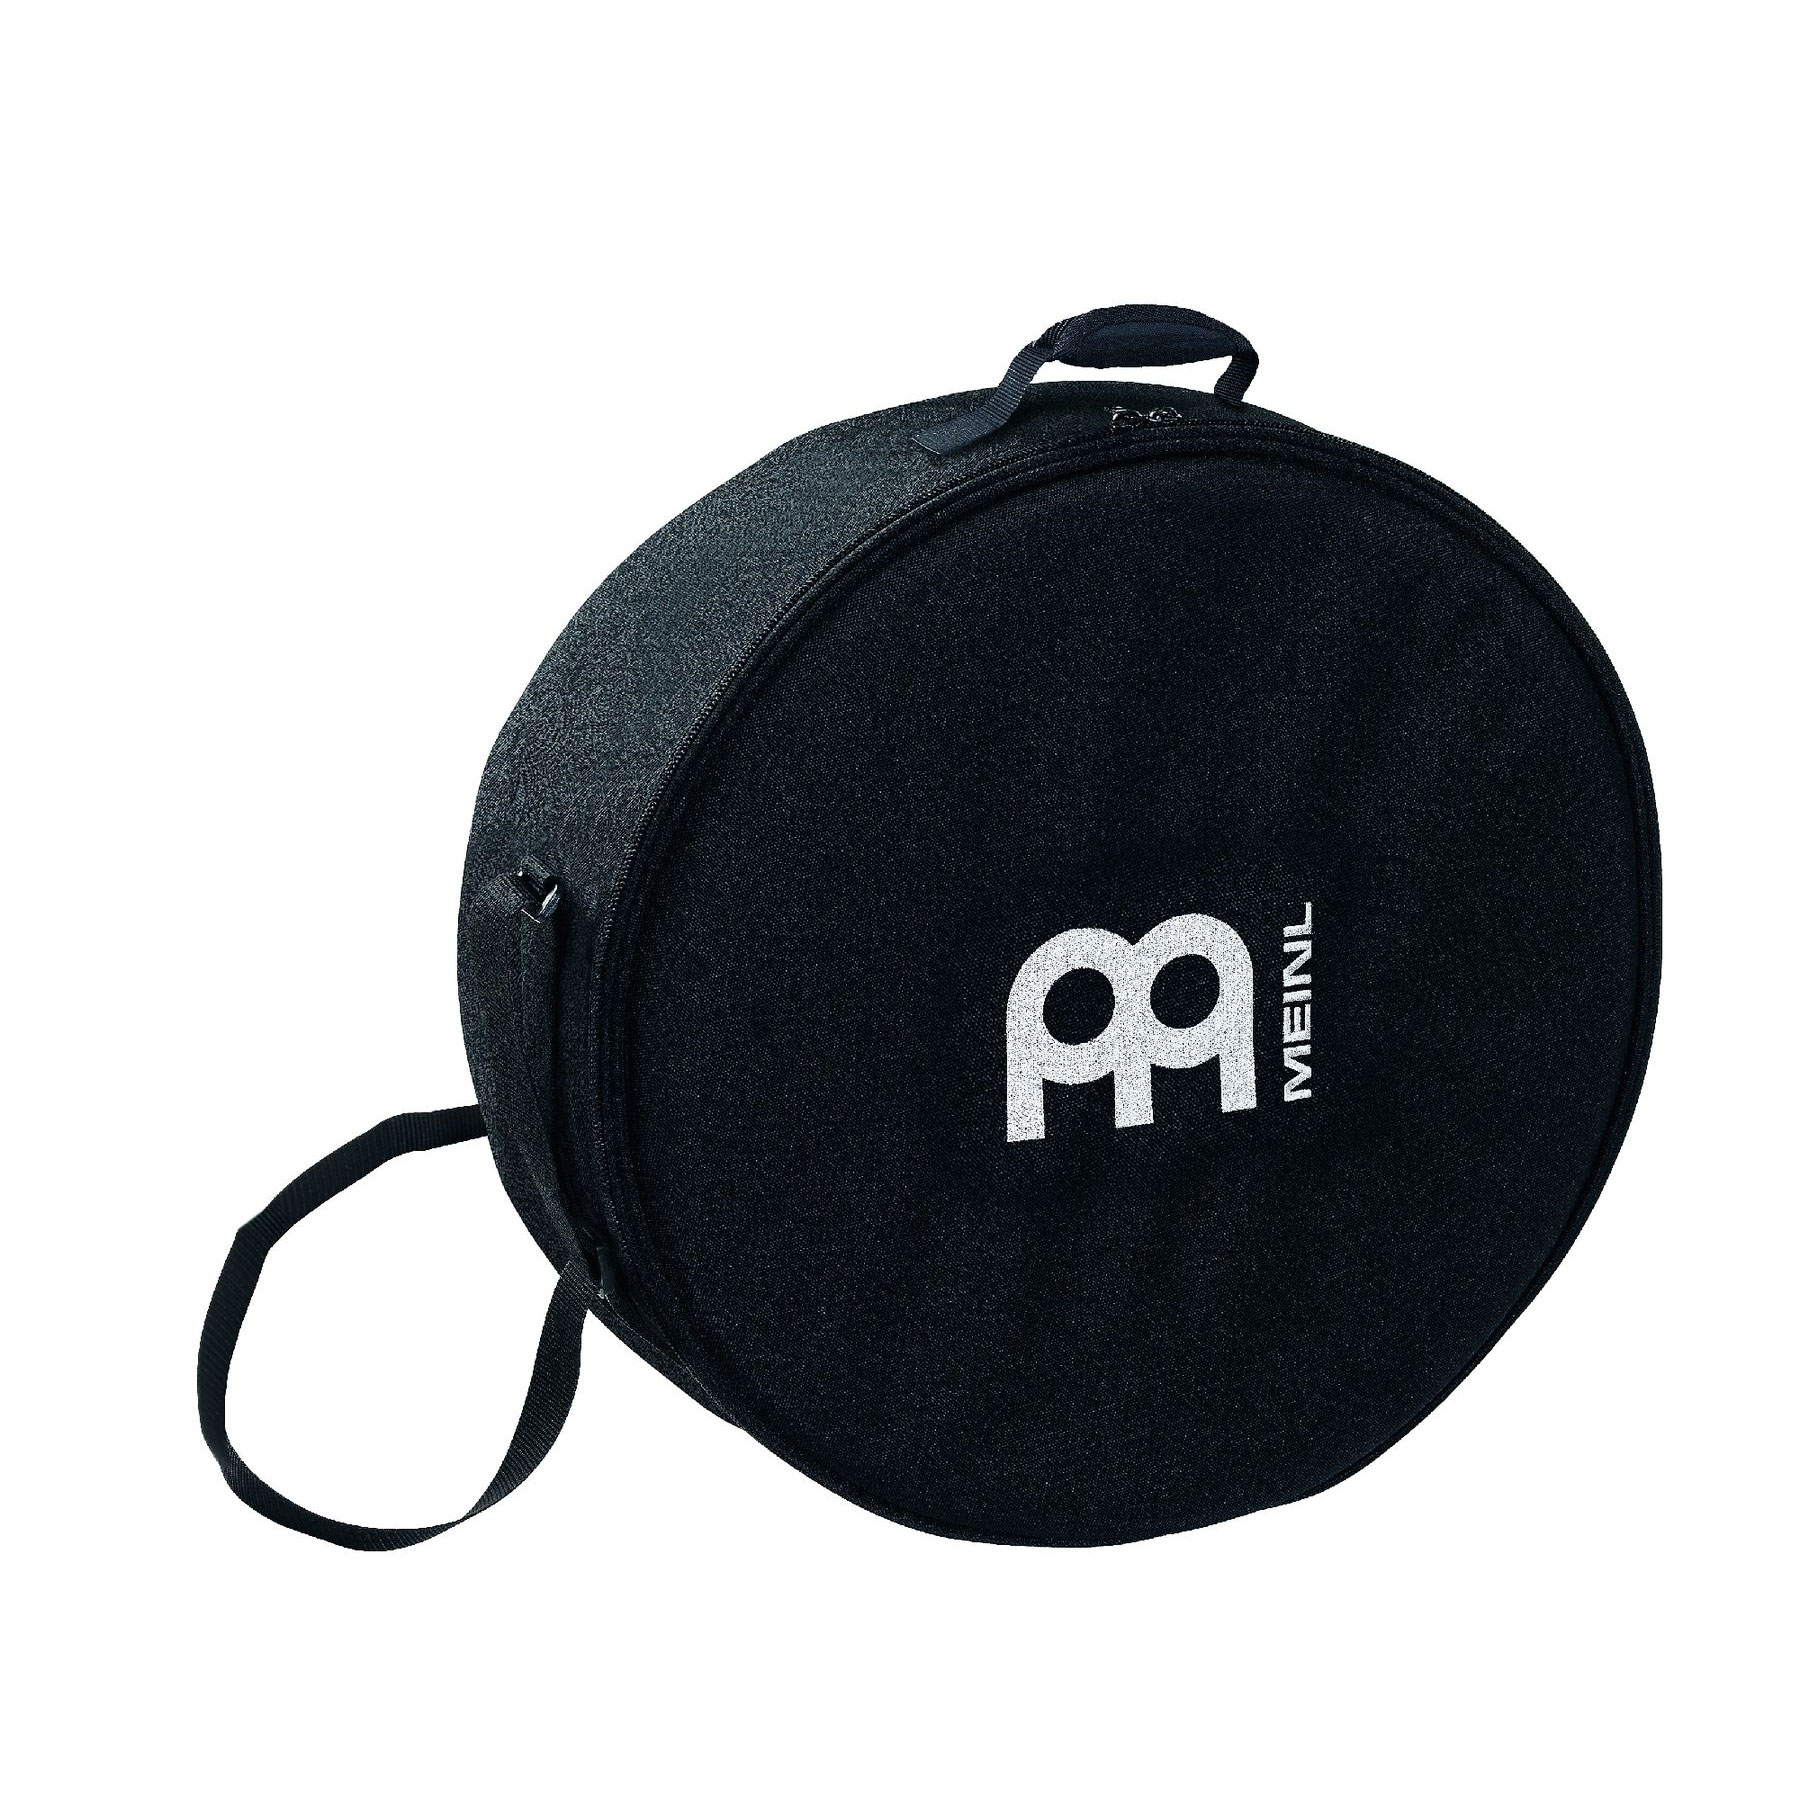 "Meinl 12"" (Diameter) Professional Bendir Drum Bag"